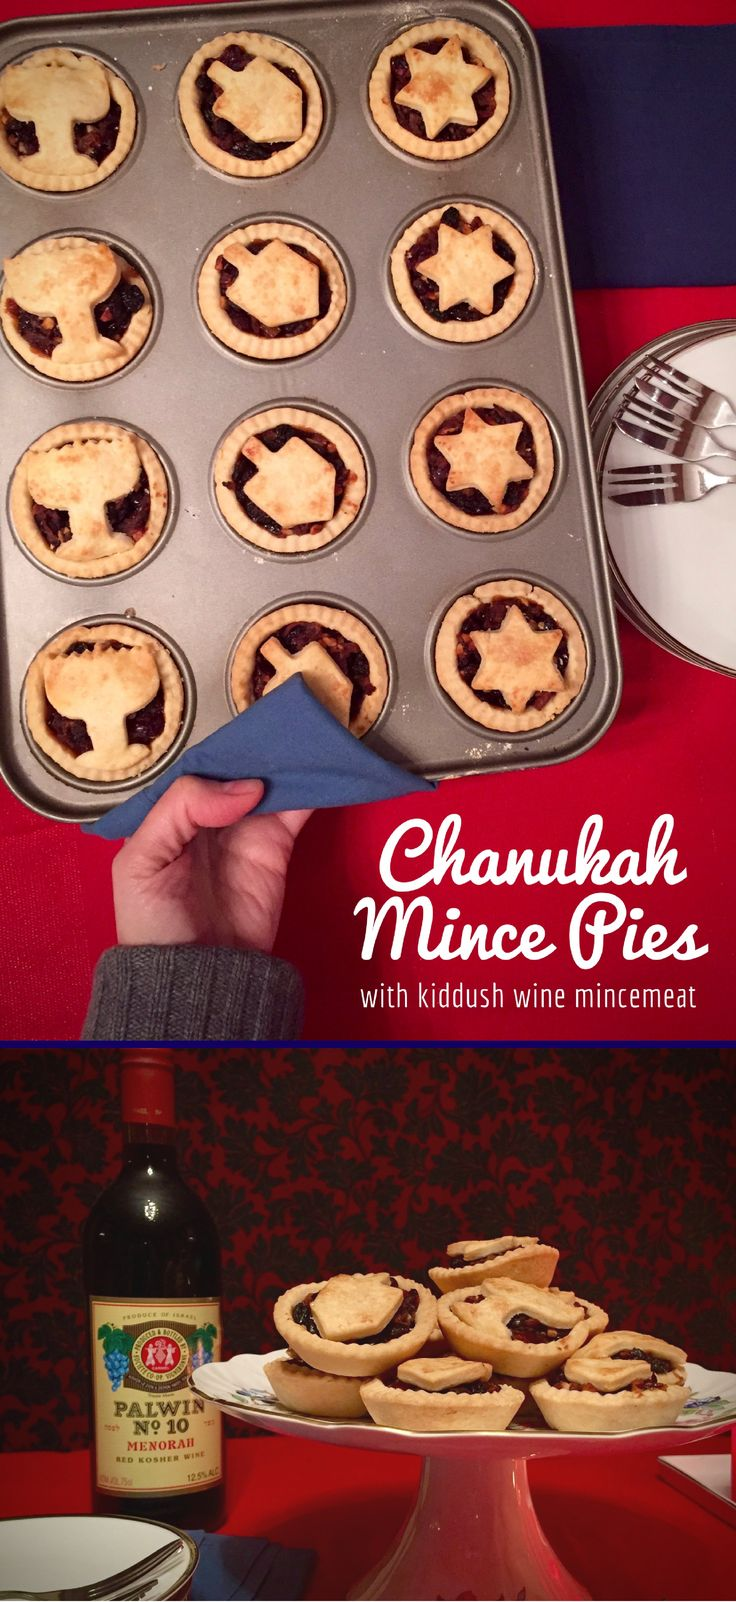 The quick & easy filling for these festive mince pies is fruity, sweet, spicy and delicious, enhanced with kiddush wine and rum. Make a batch today! #chanukah #hannukah #festive #jewish